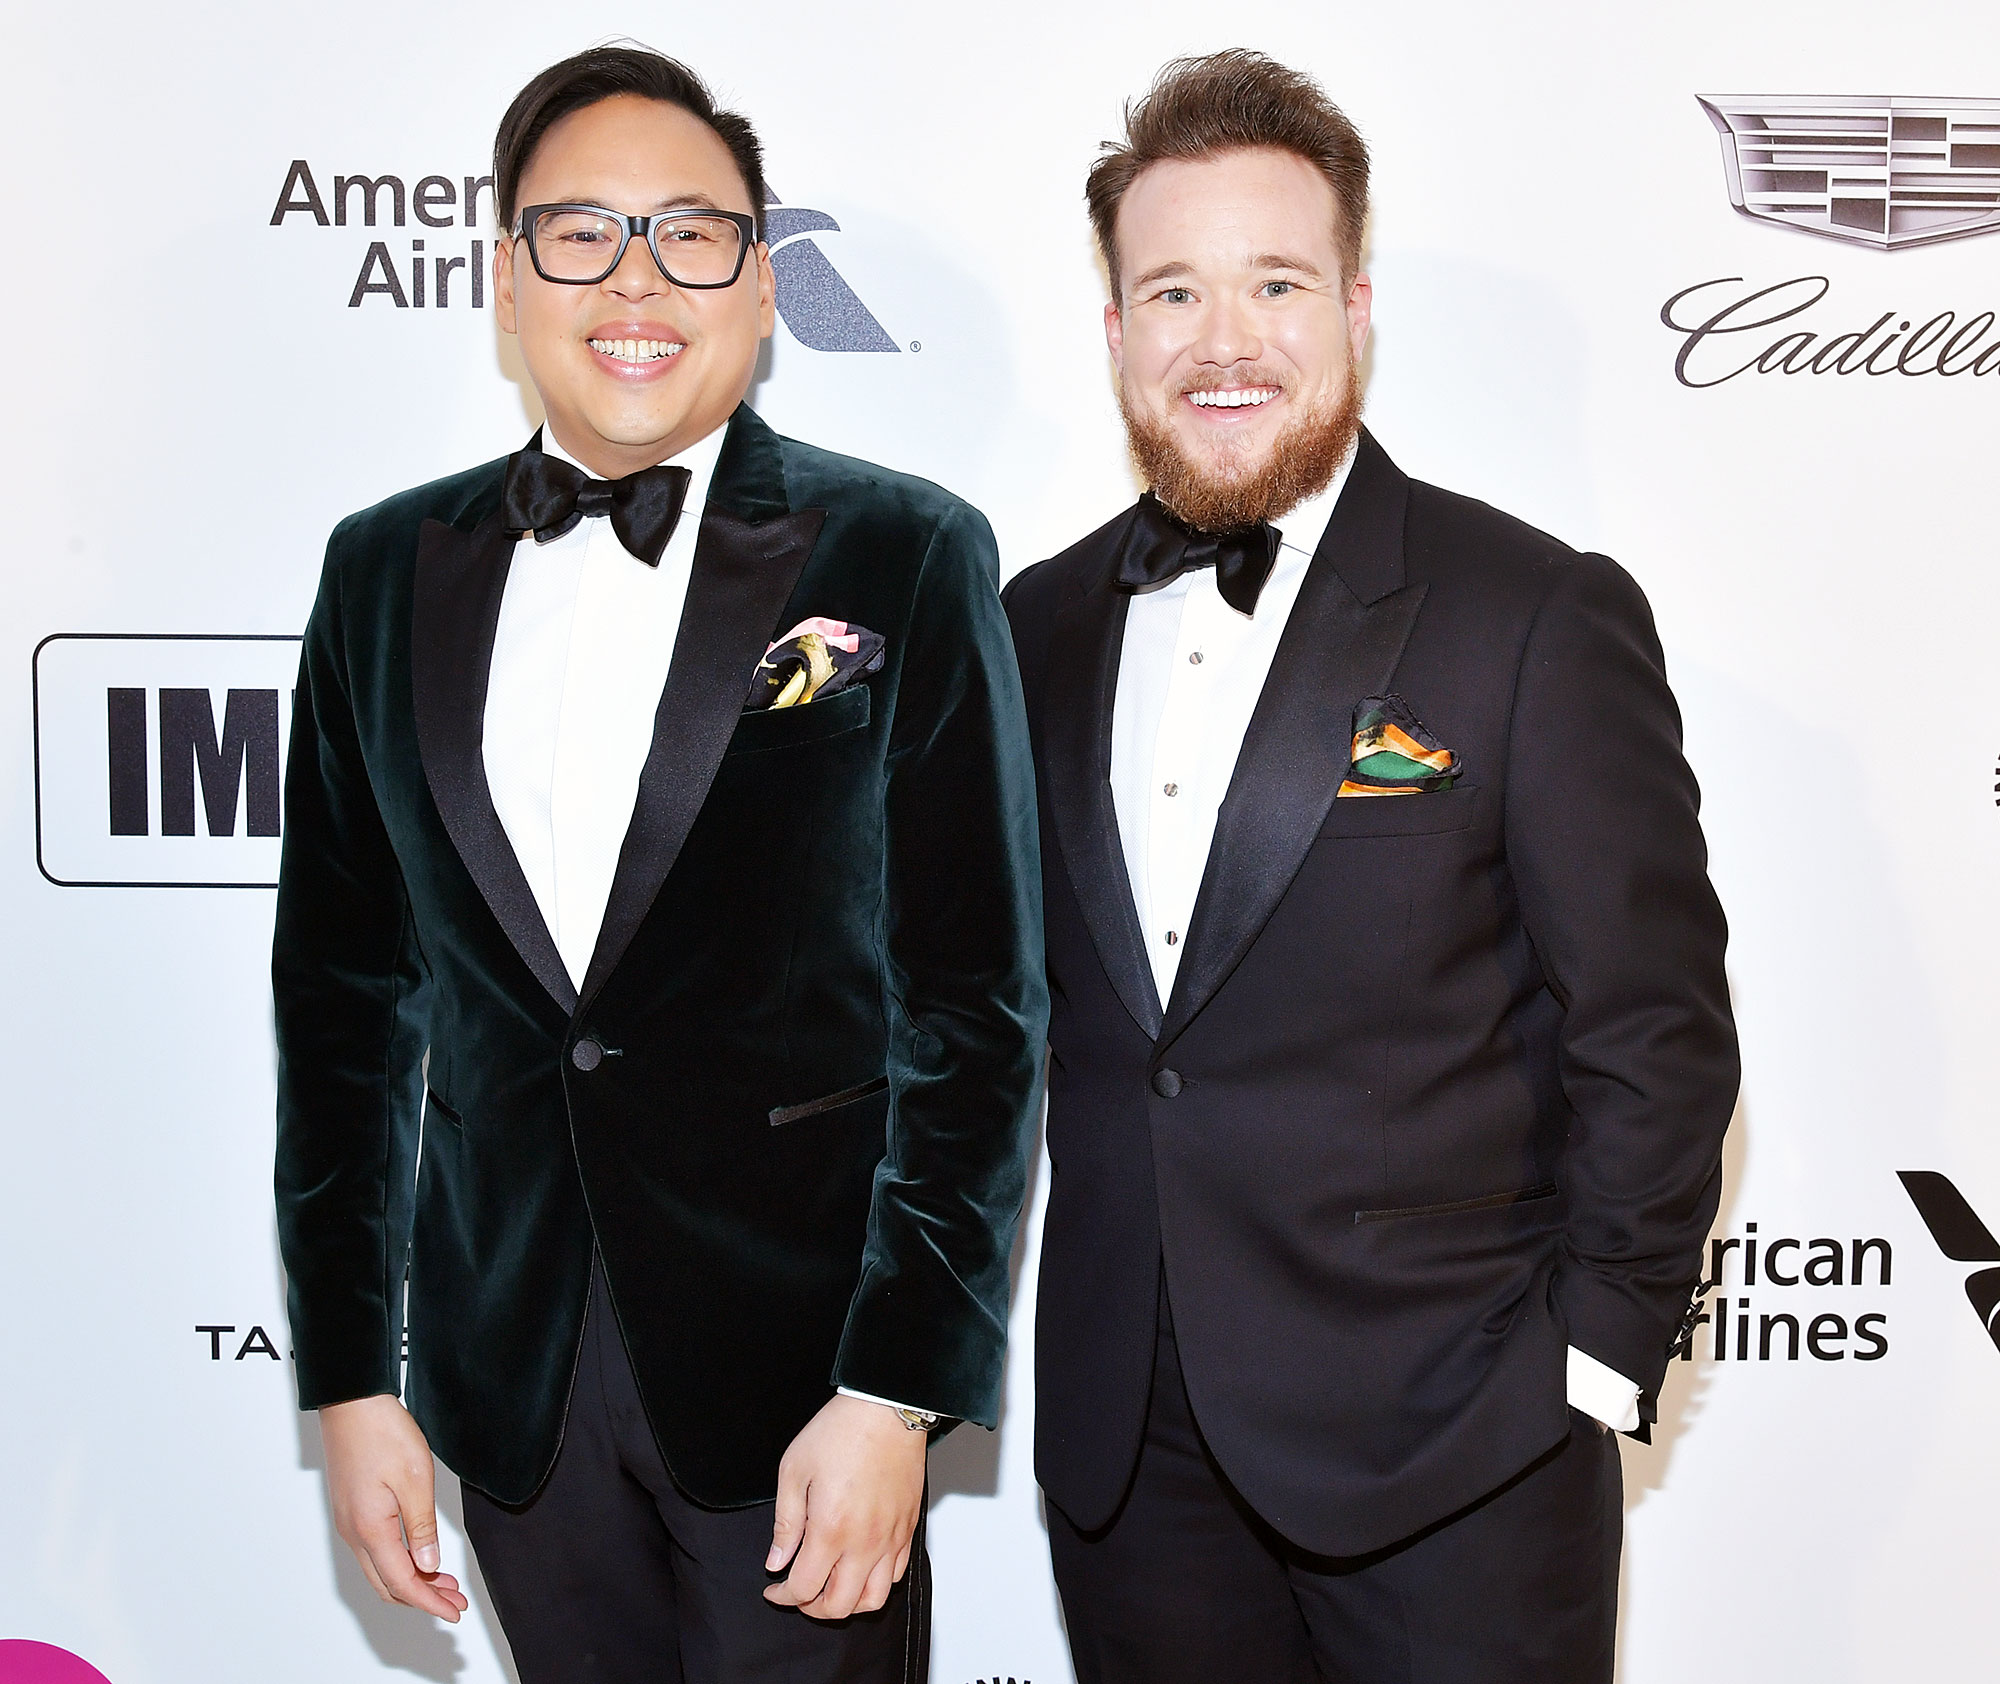 Superstore Cast Nico Santos Boyfriend Survivor Alum Zeke Smith Amazing Partner - Nico Santos and Zeke Smith attend the 27th annual Elton John AIDS Foundation Academy Awards Viewing Party on February 24, 2019 in West Hollywood, California.